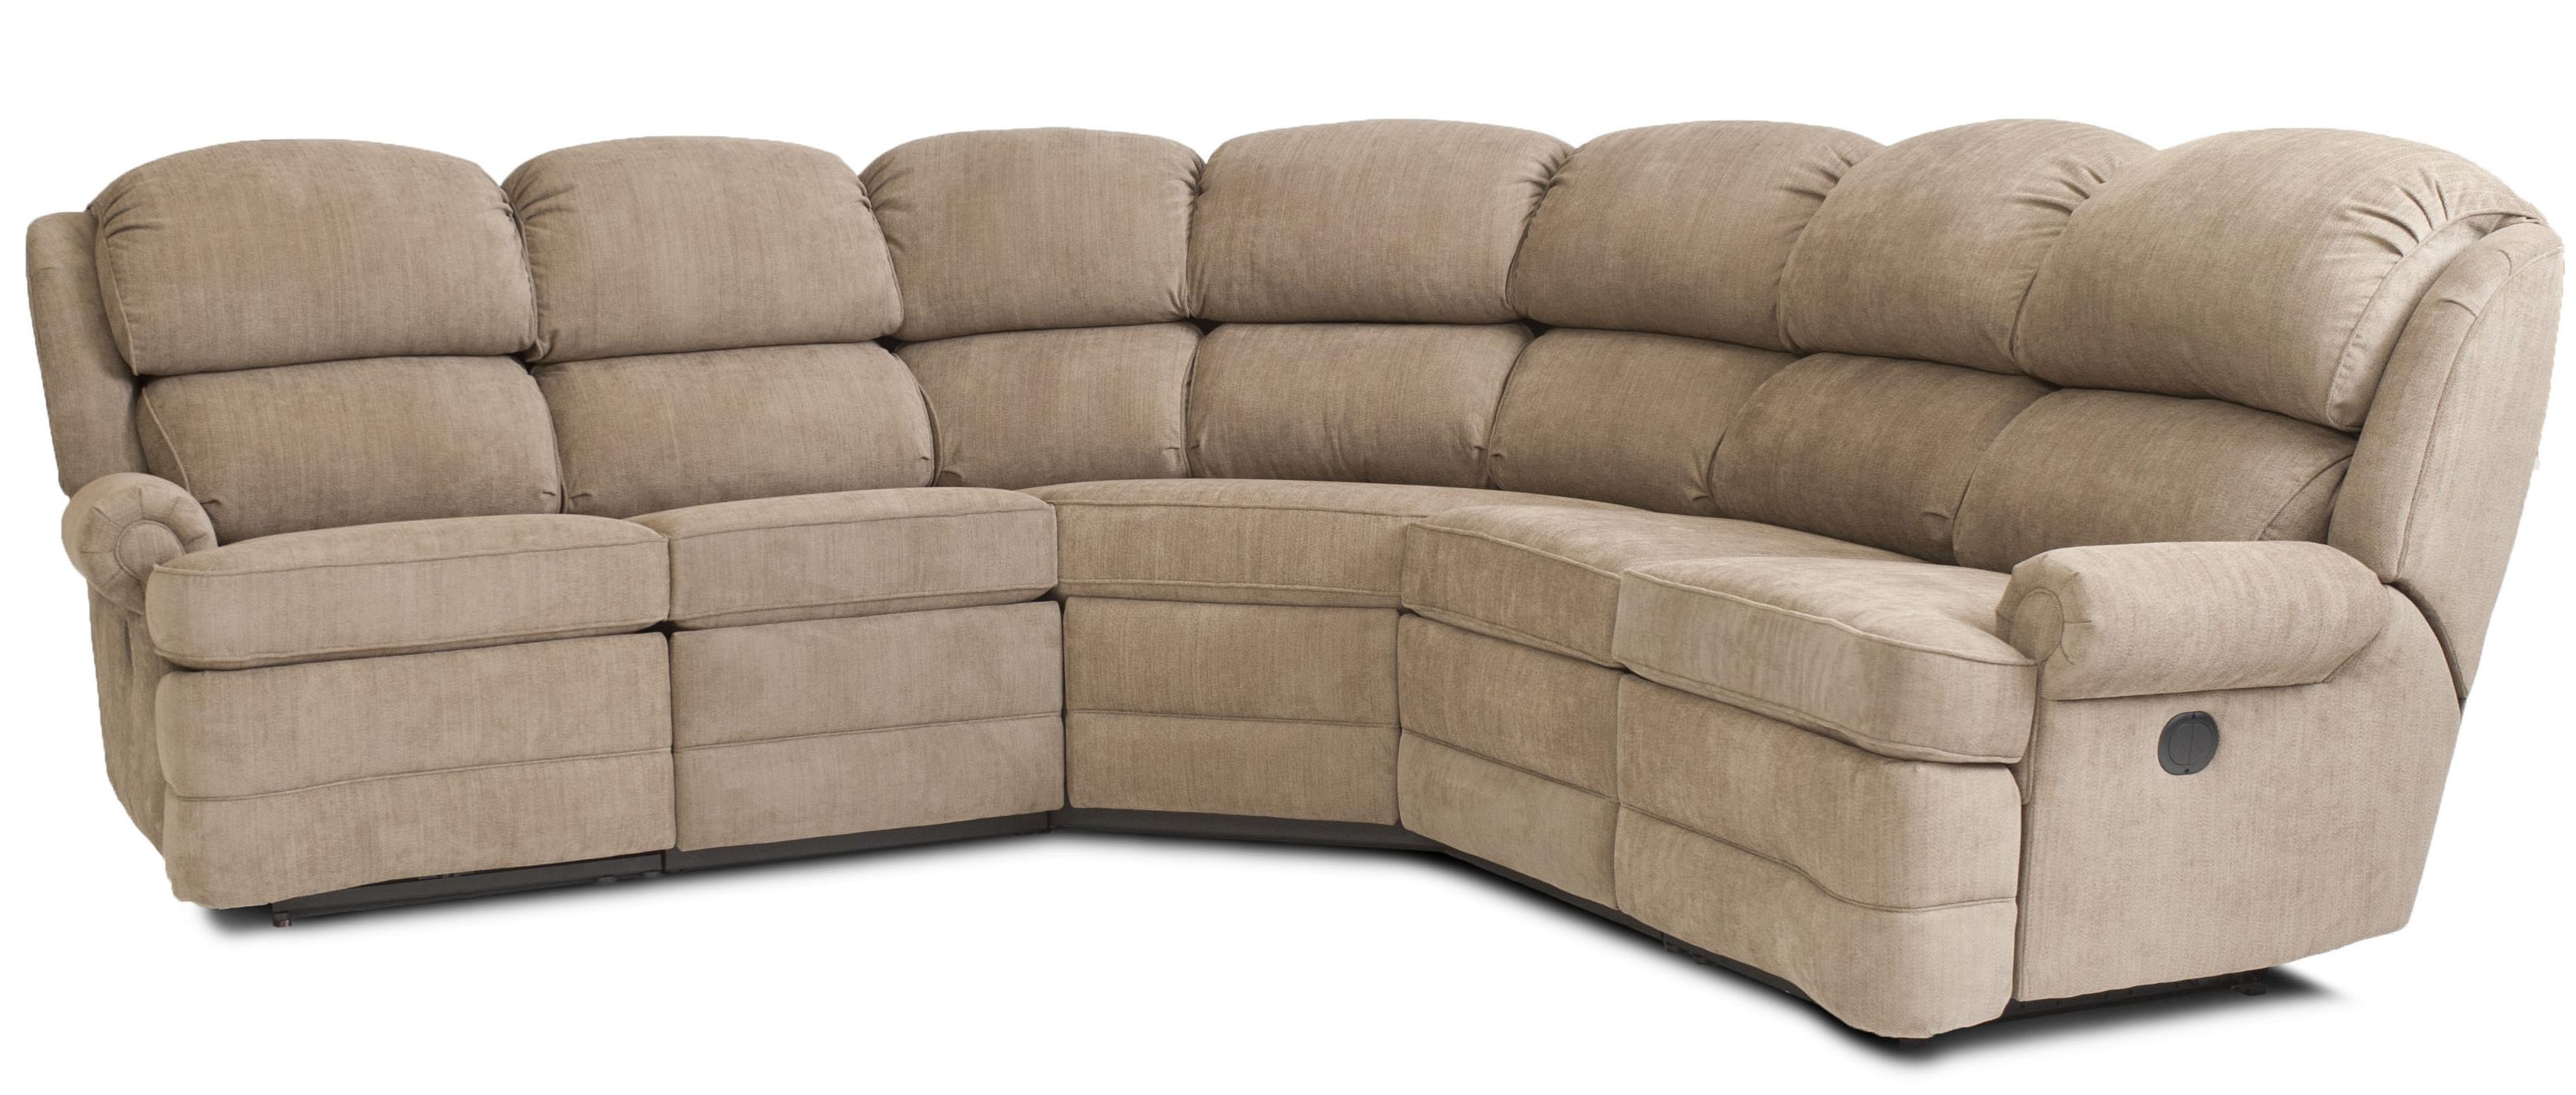 Transitional 5-Piece Reclining Sectional Sofa with Small Rolled Arms  sc 1 st  Wolf Furniture : small sectional reclining sofa - Sectionals, Sofas & Couches